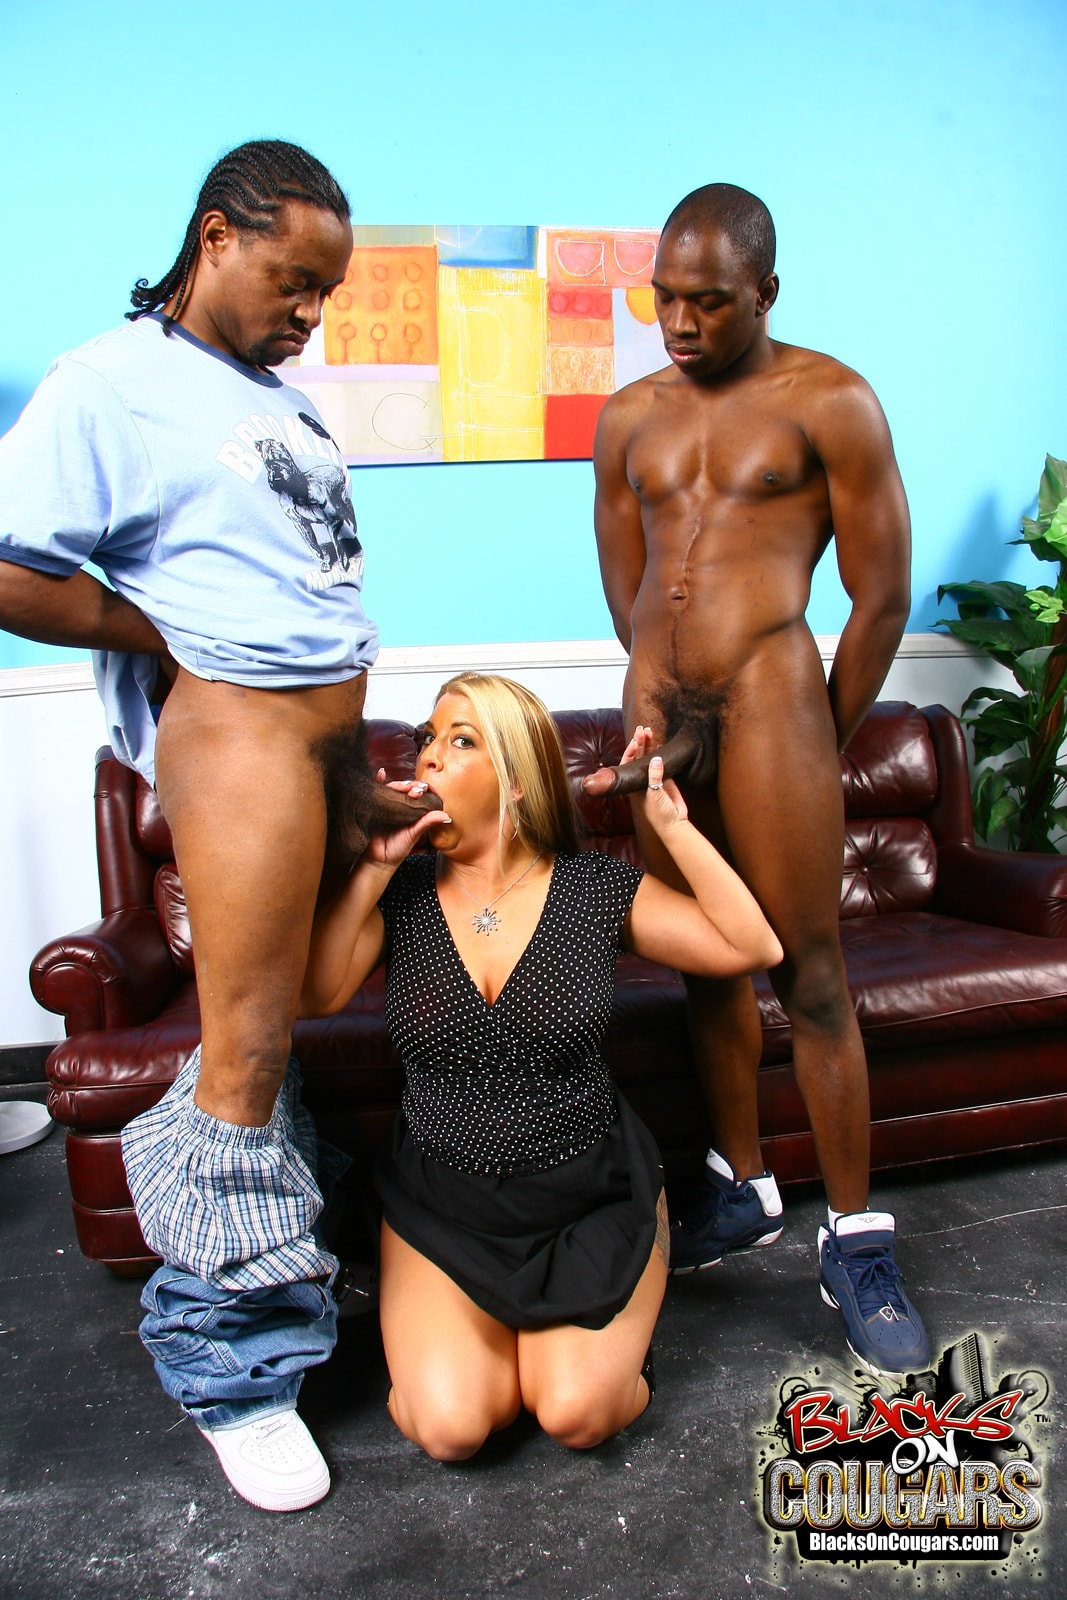 Dogfart '- Blacks On Cougars' starring Joclyn Stone (Photo 16)